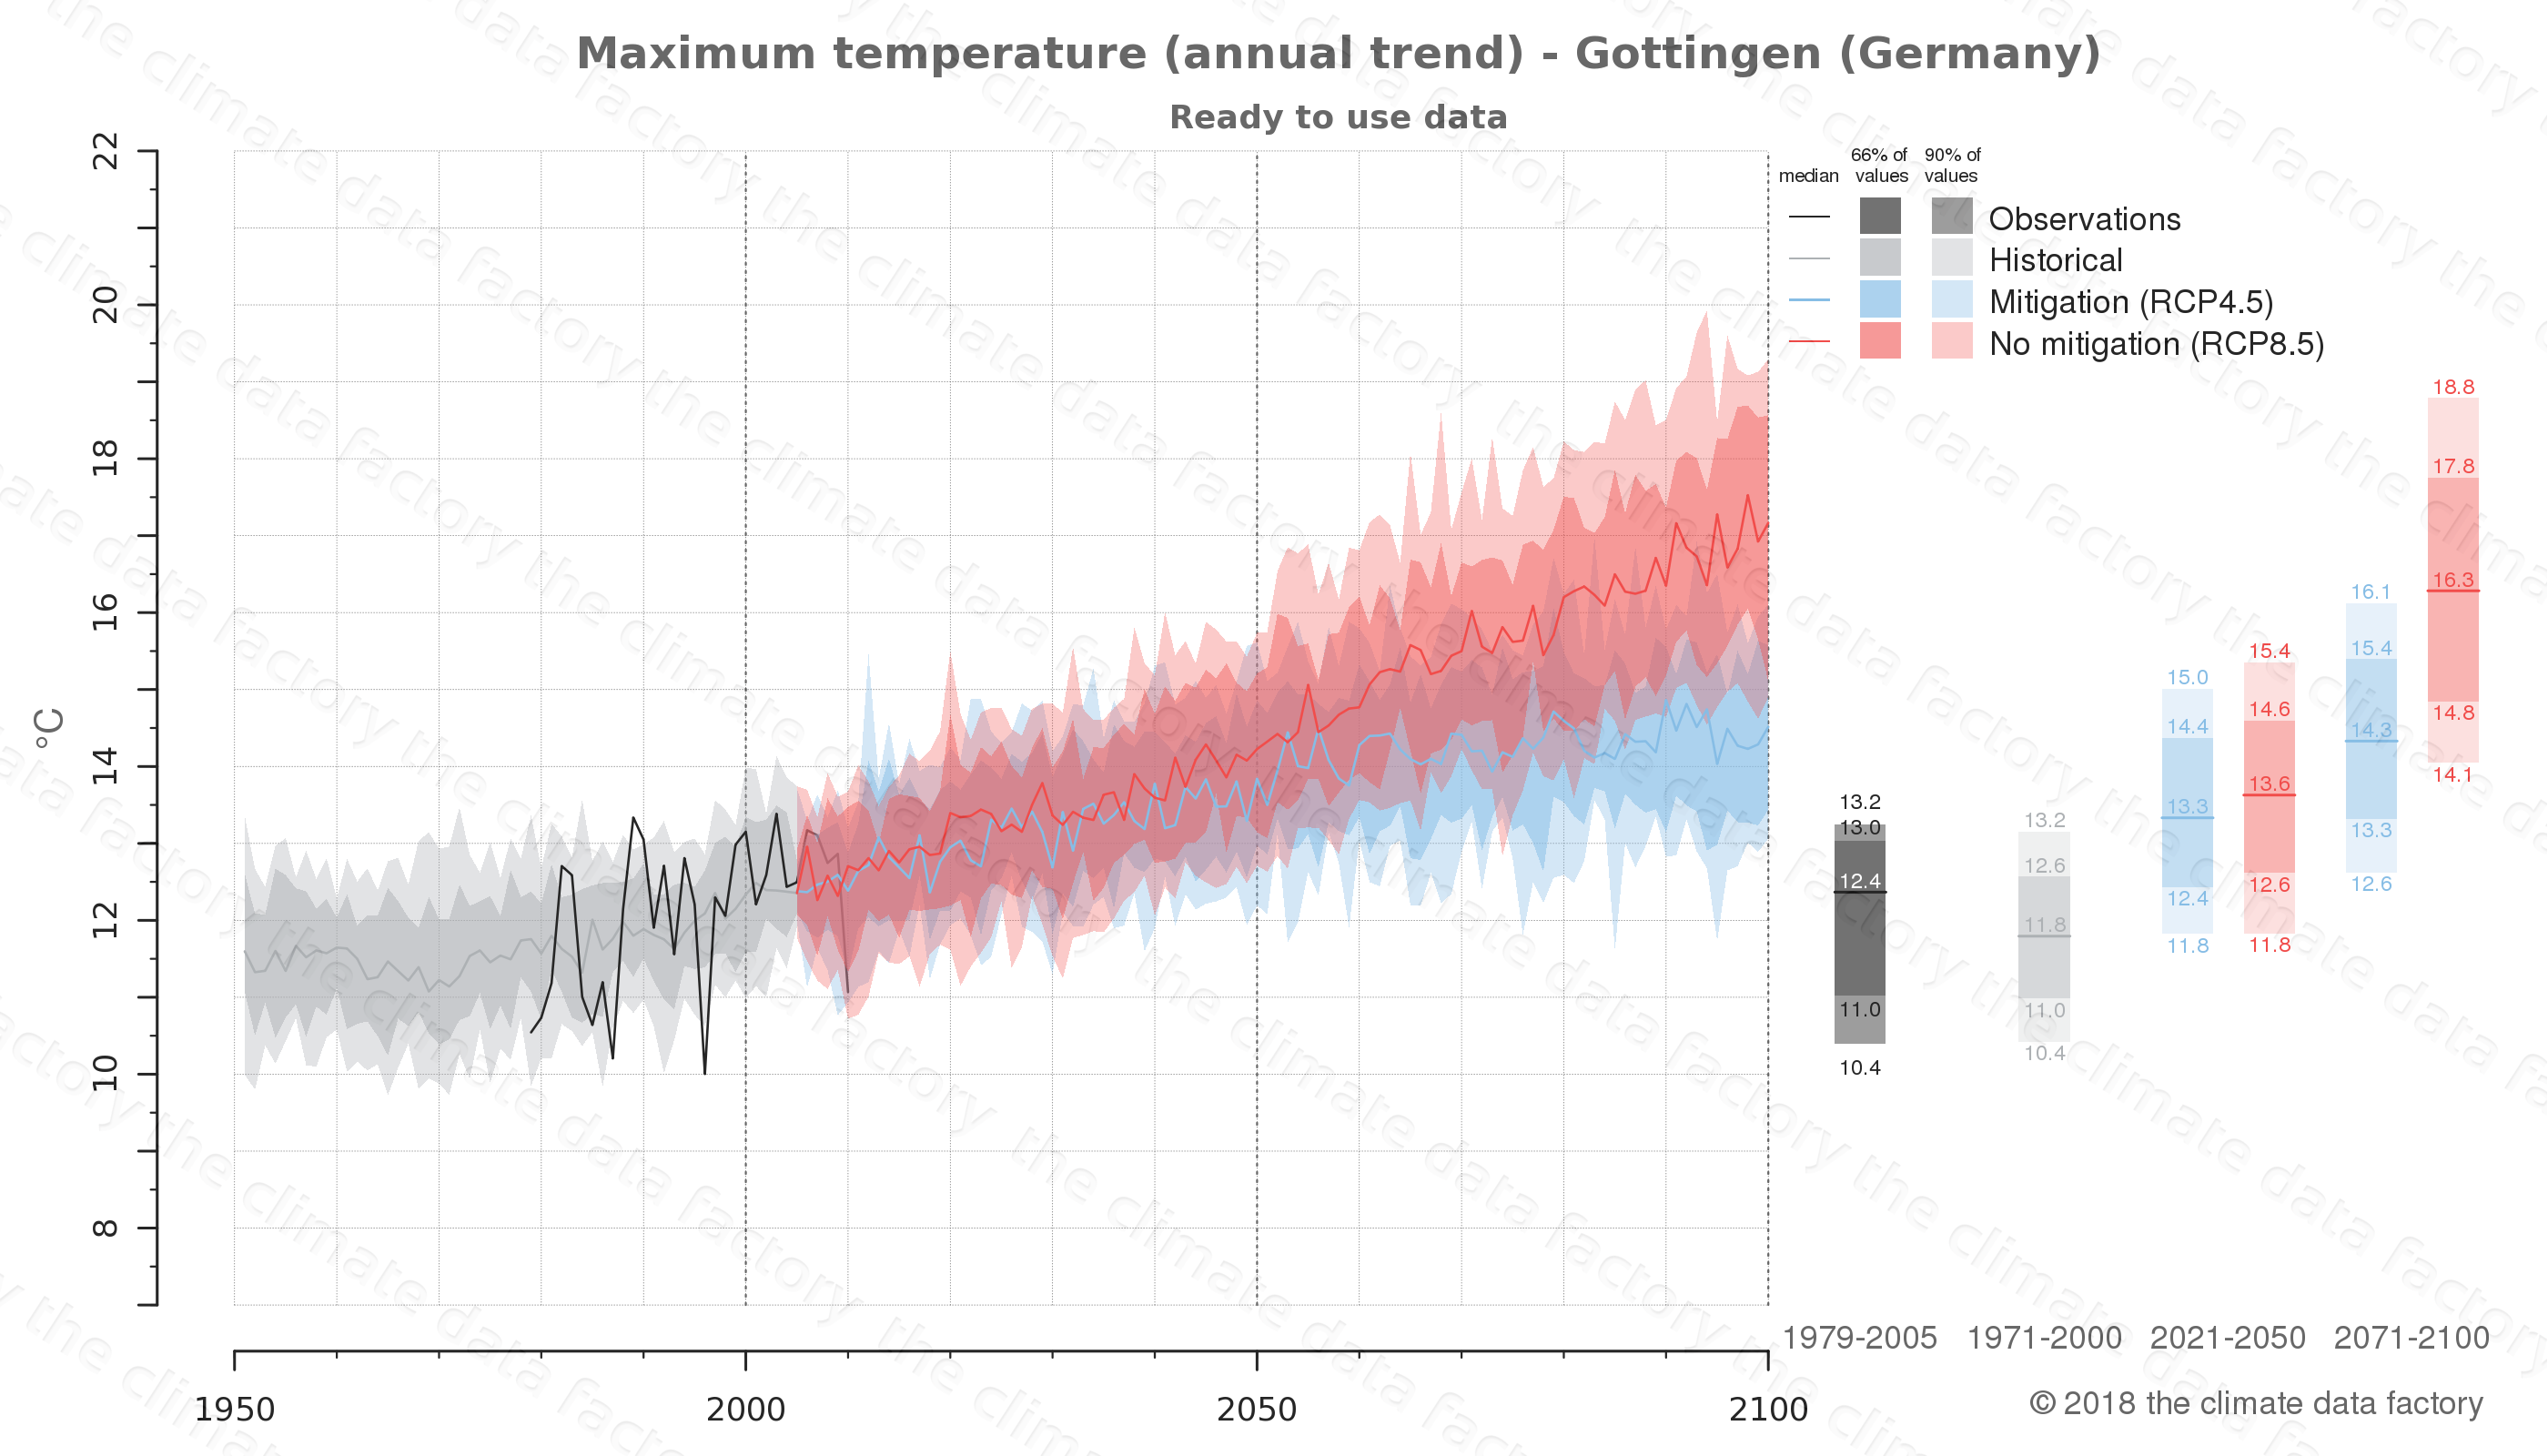 climate change data policy adaptation climate graph city data maximum-temperature gottingen germany